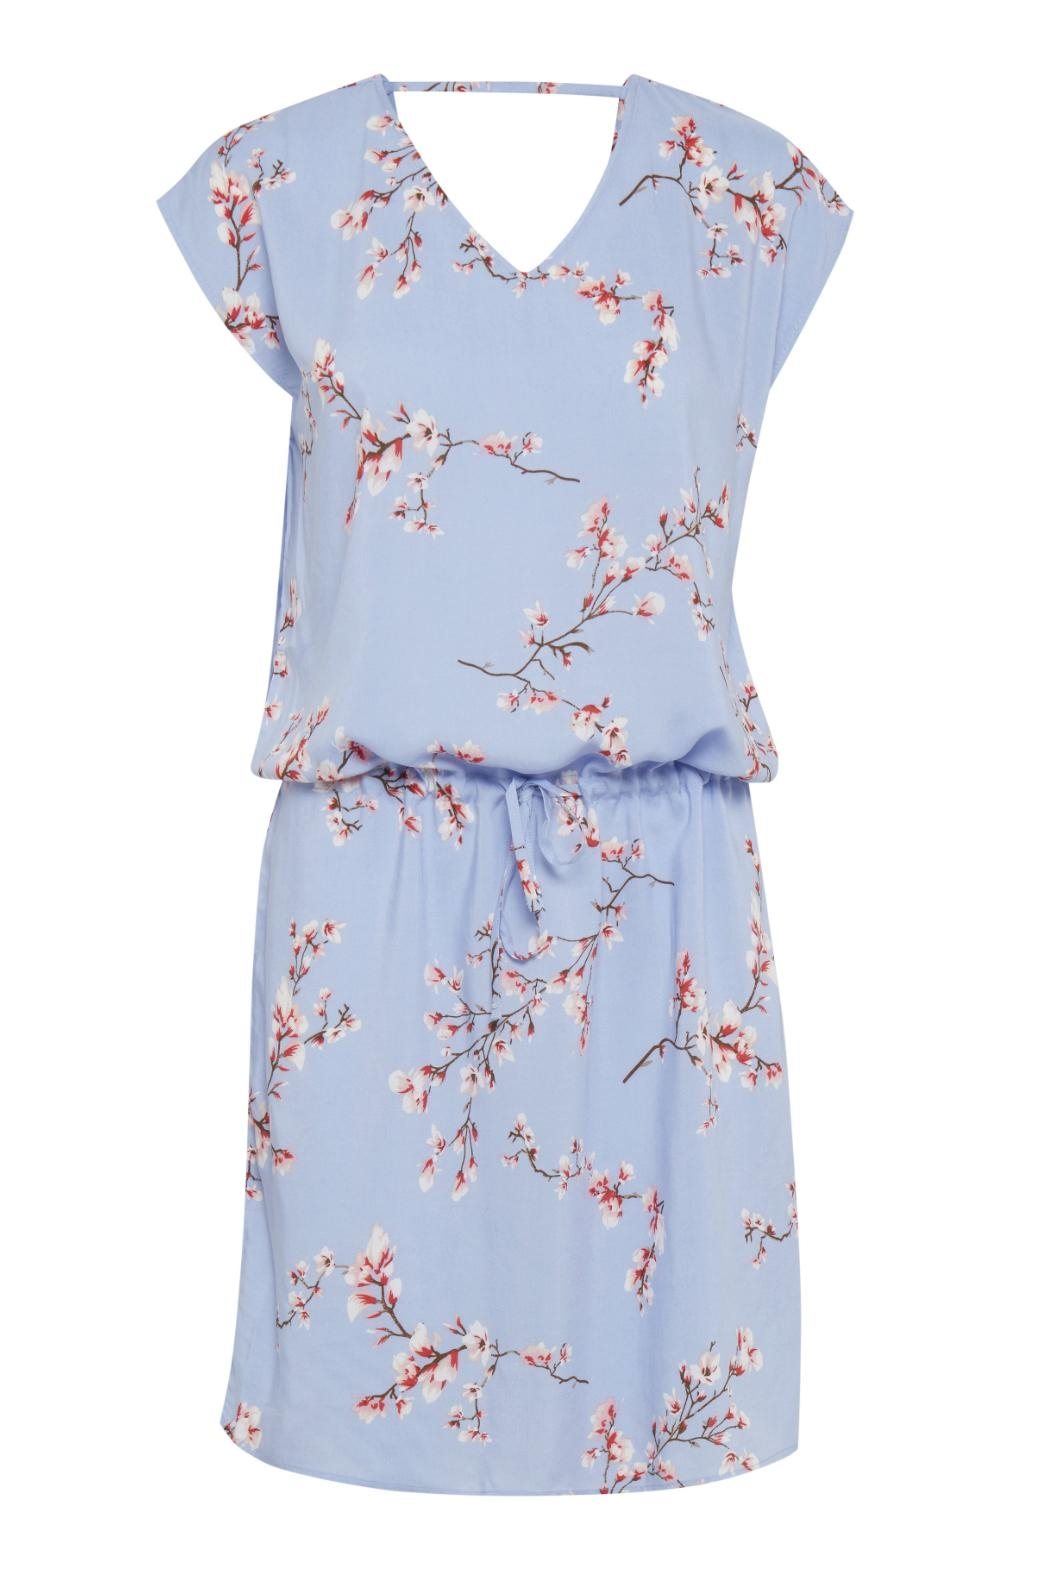 B.young Bluebell Floral Dress - Main Image